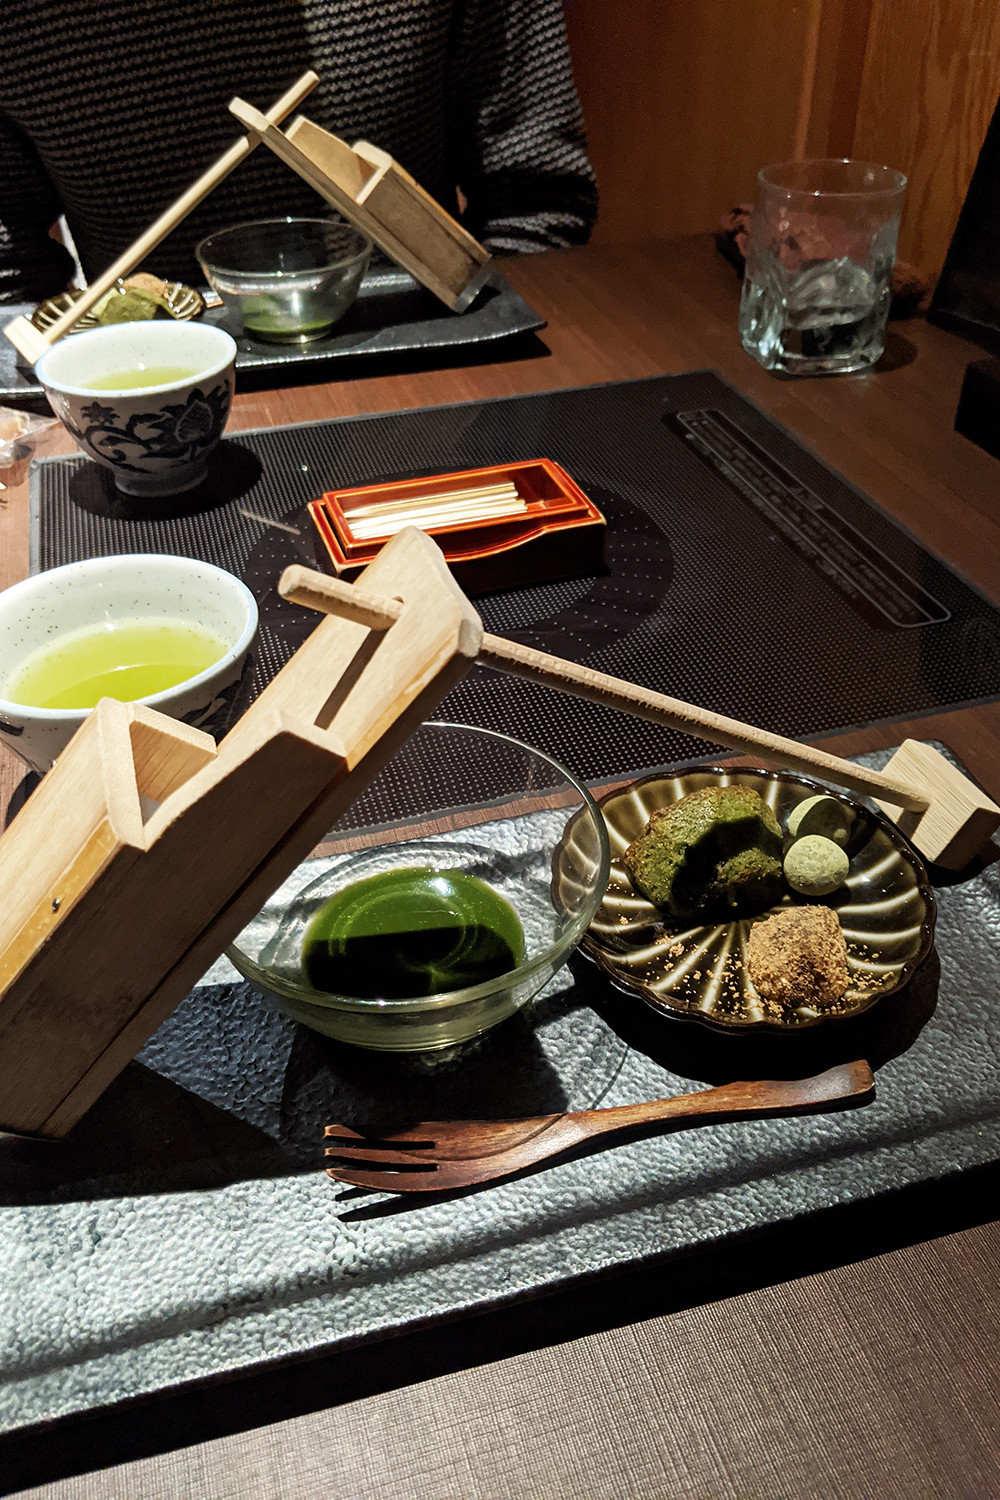 51kyoto-japan-torataro-matcha-dessert-food-travel